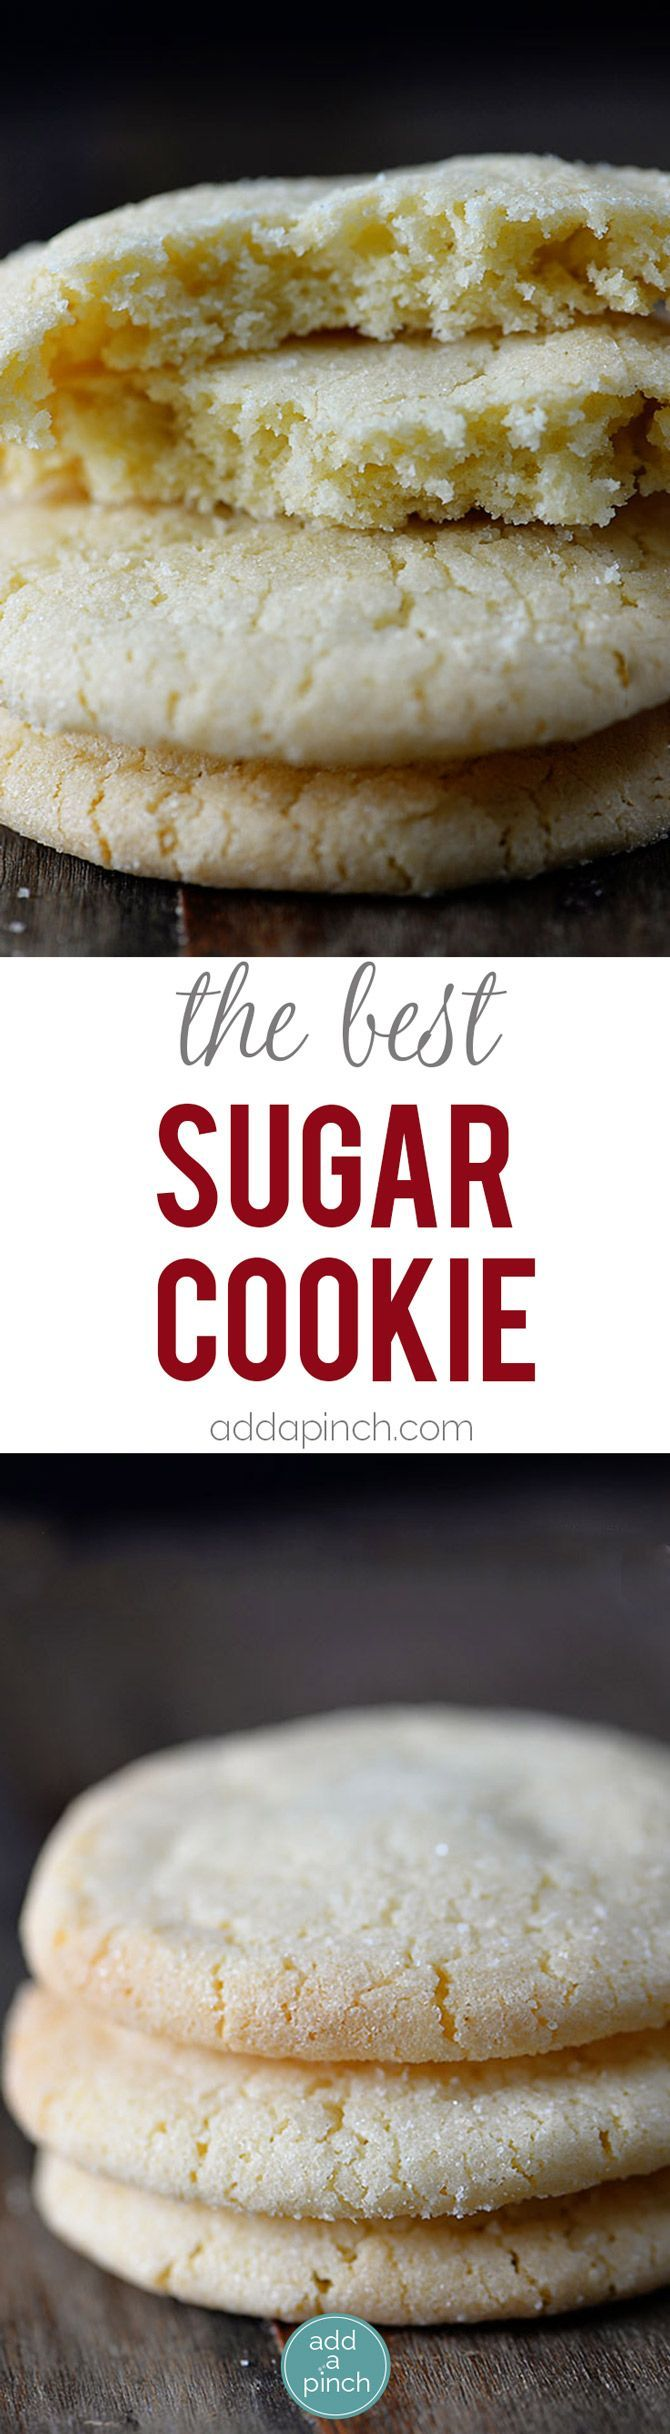 The Best Sugar Cookie Recipe - Sugar cookies make a favorite little cookie recipe for so many. Get this family-favorite recipe for chewy sugar cookies that everyone is sure to love. // addapinch.com (Best Desserts To Sell)